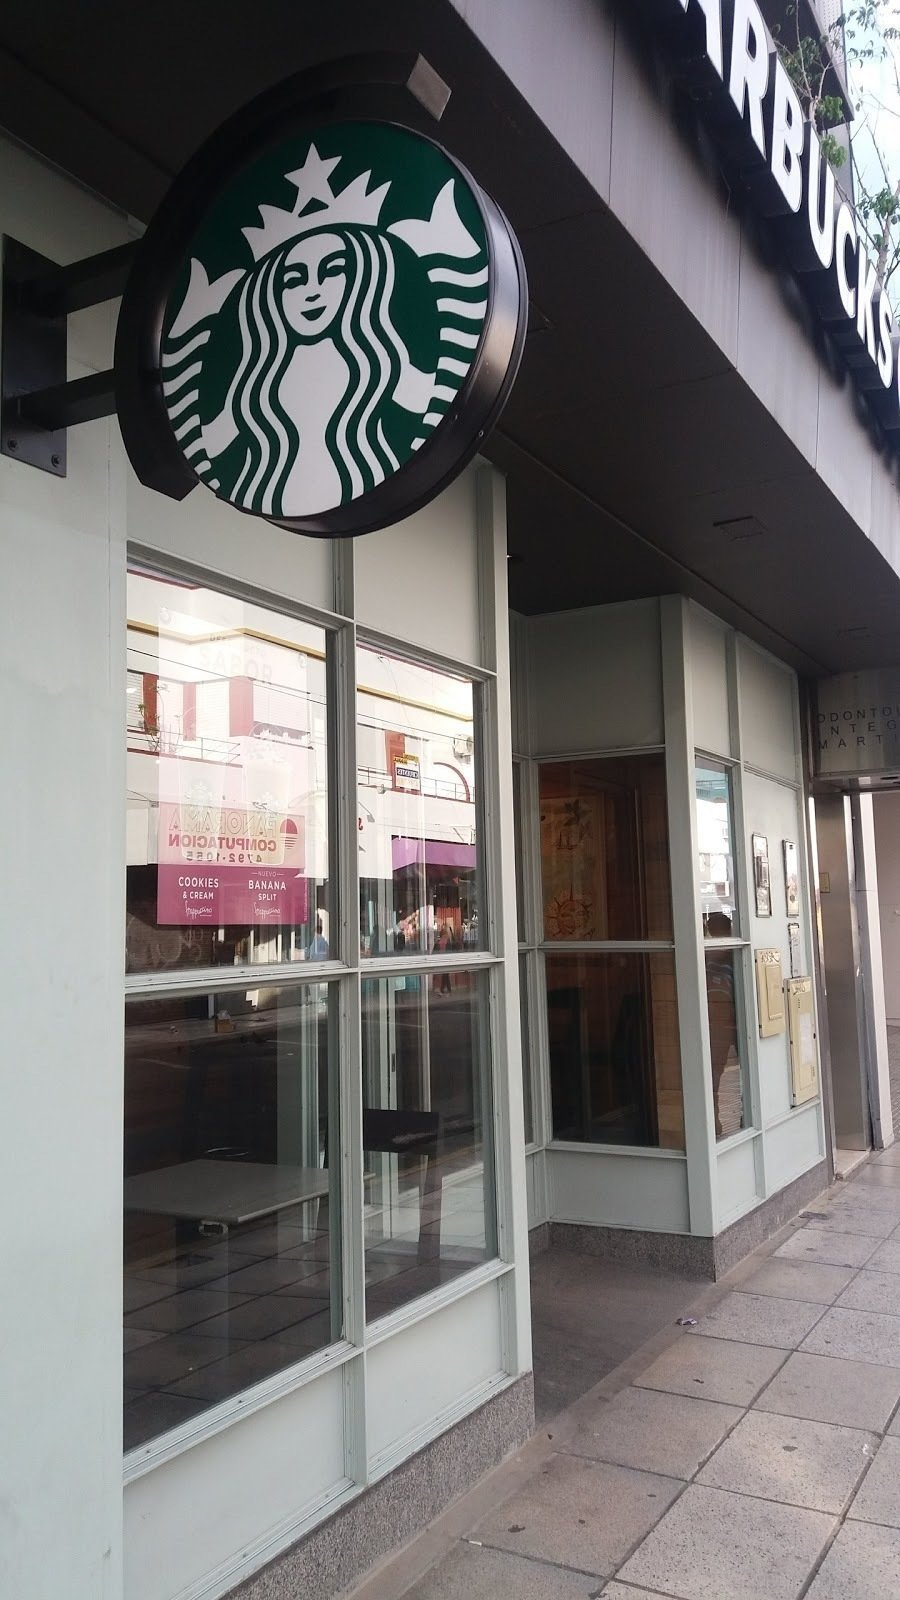 Starbucks Gral. Alvear: A Work-Friendly Place in Martínez